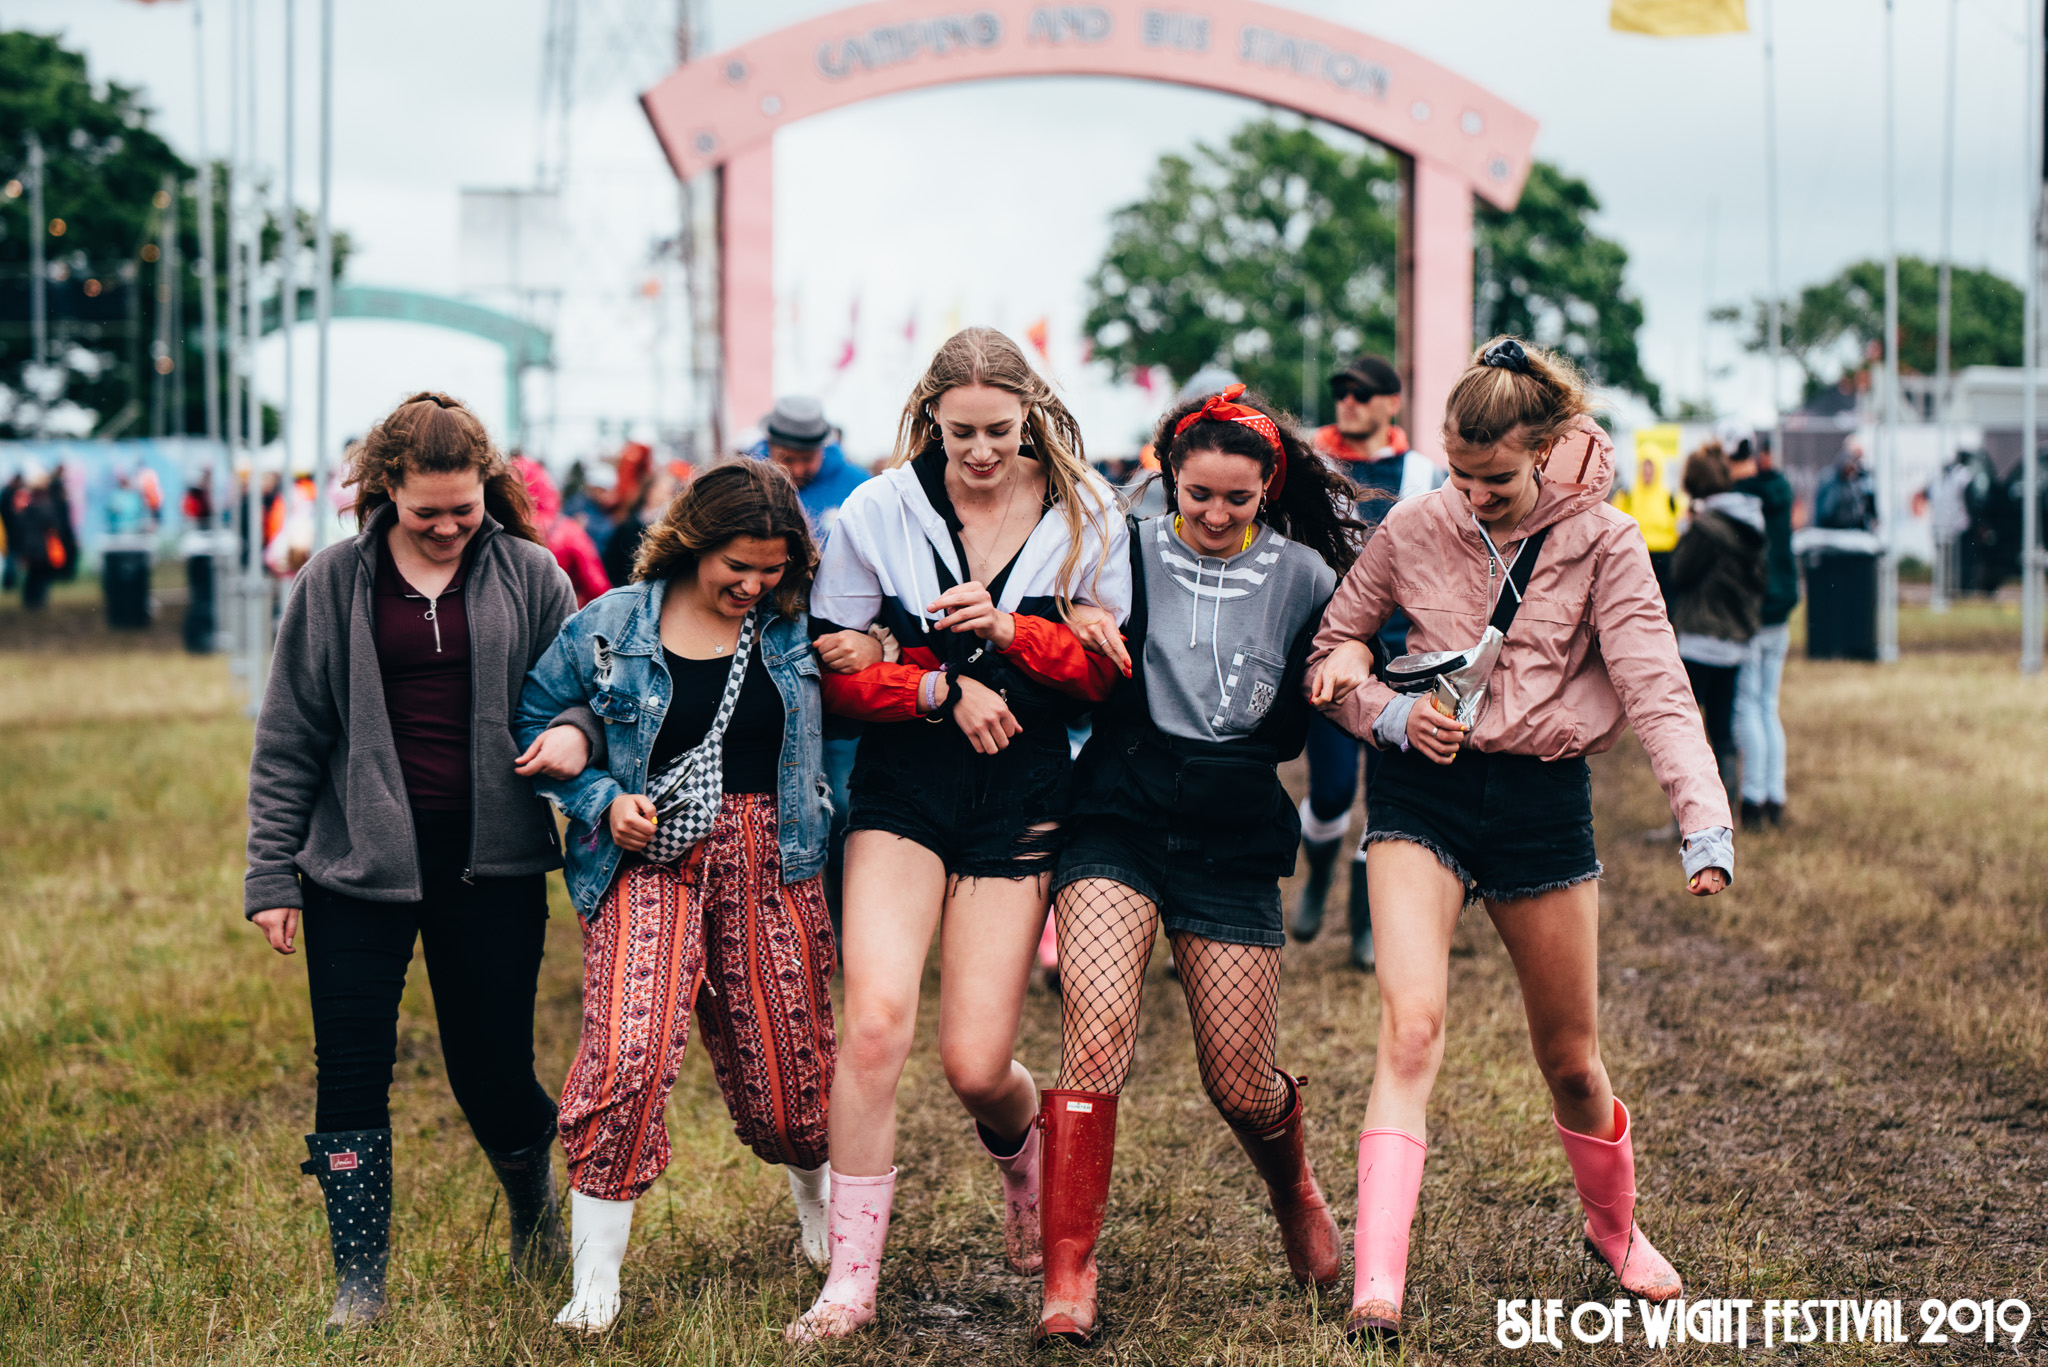 Festival-goers braving the mud on Thursday